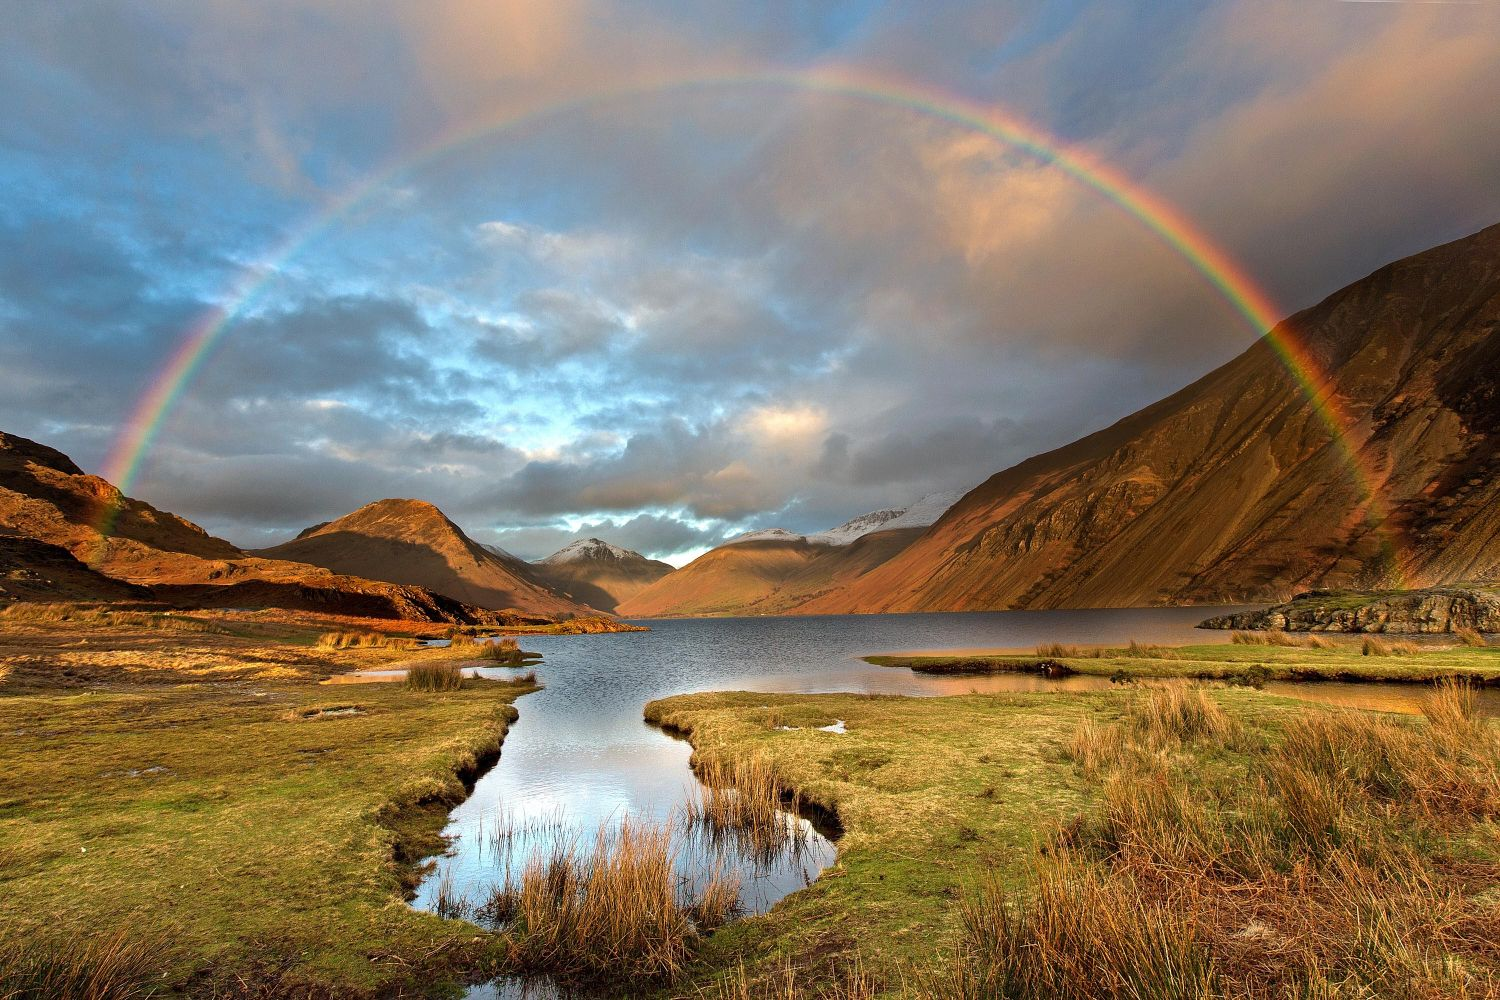 Rainbow at sunset over Wastwater